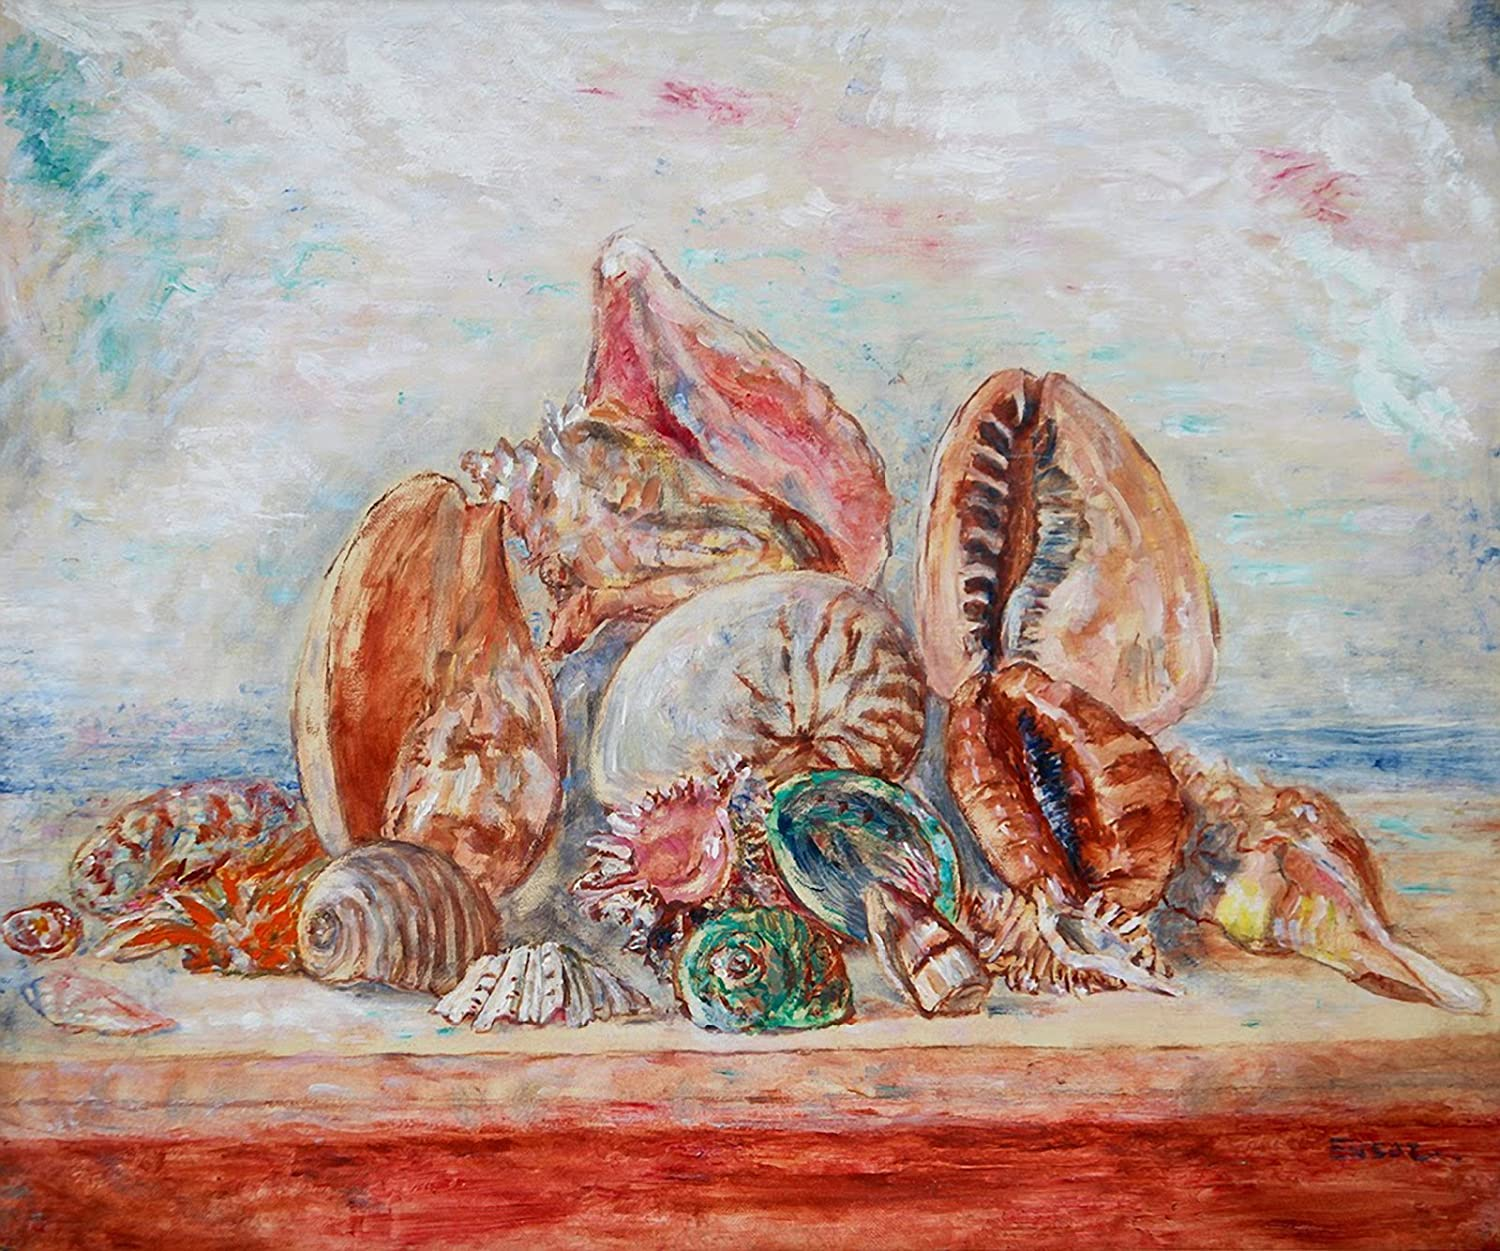 Aenx James Ensor Still Life With Shells Painting 30 X 25 Wall Art Giclee Canvas Print Unframed Posters Prints